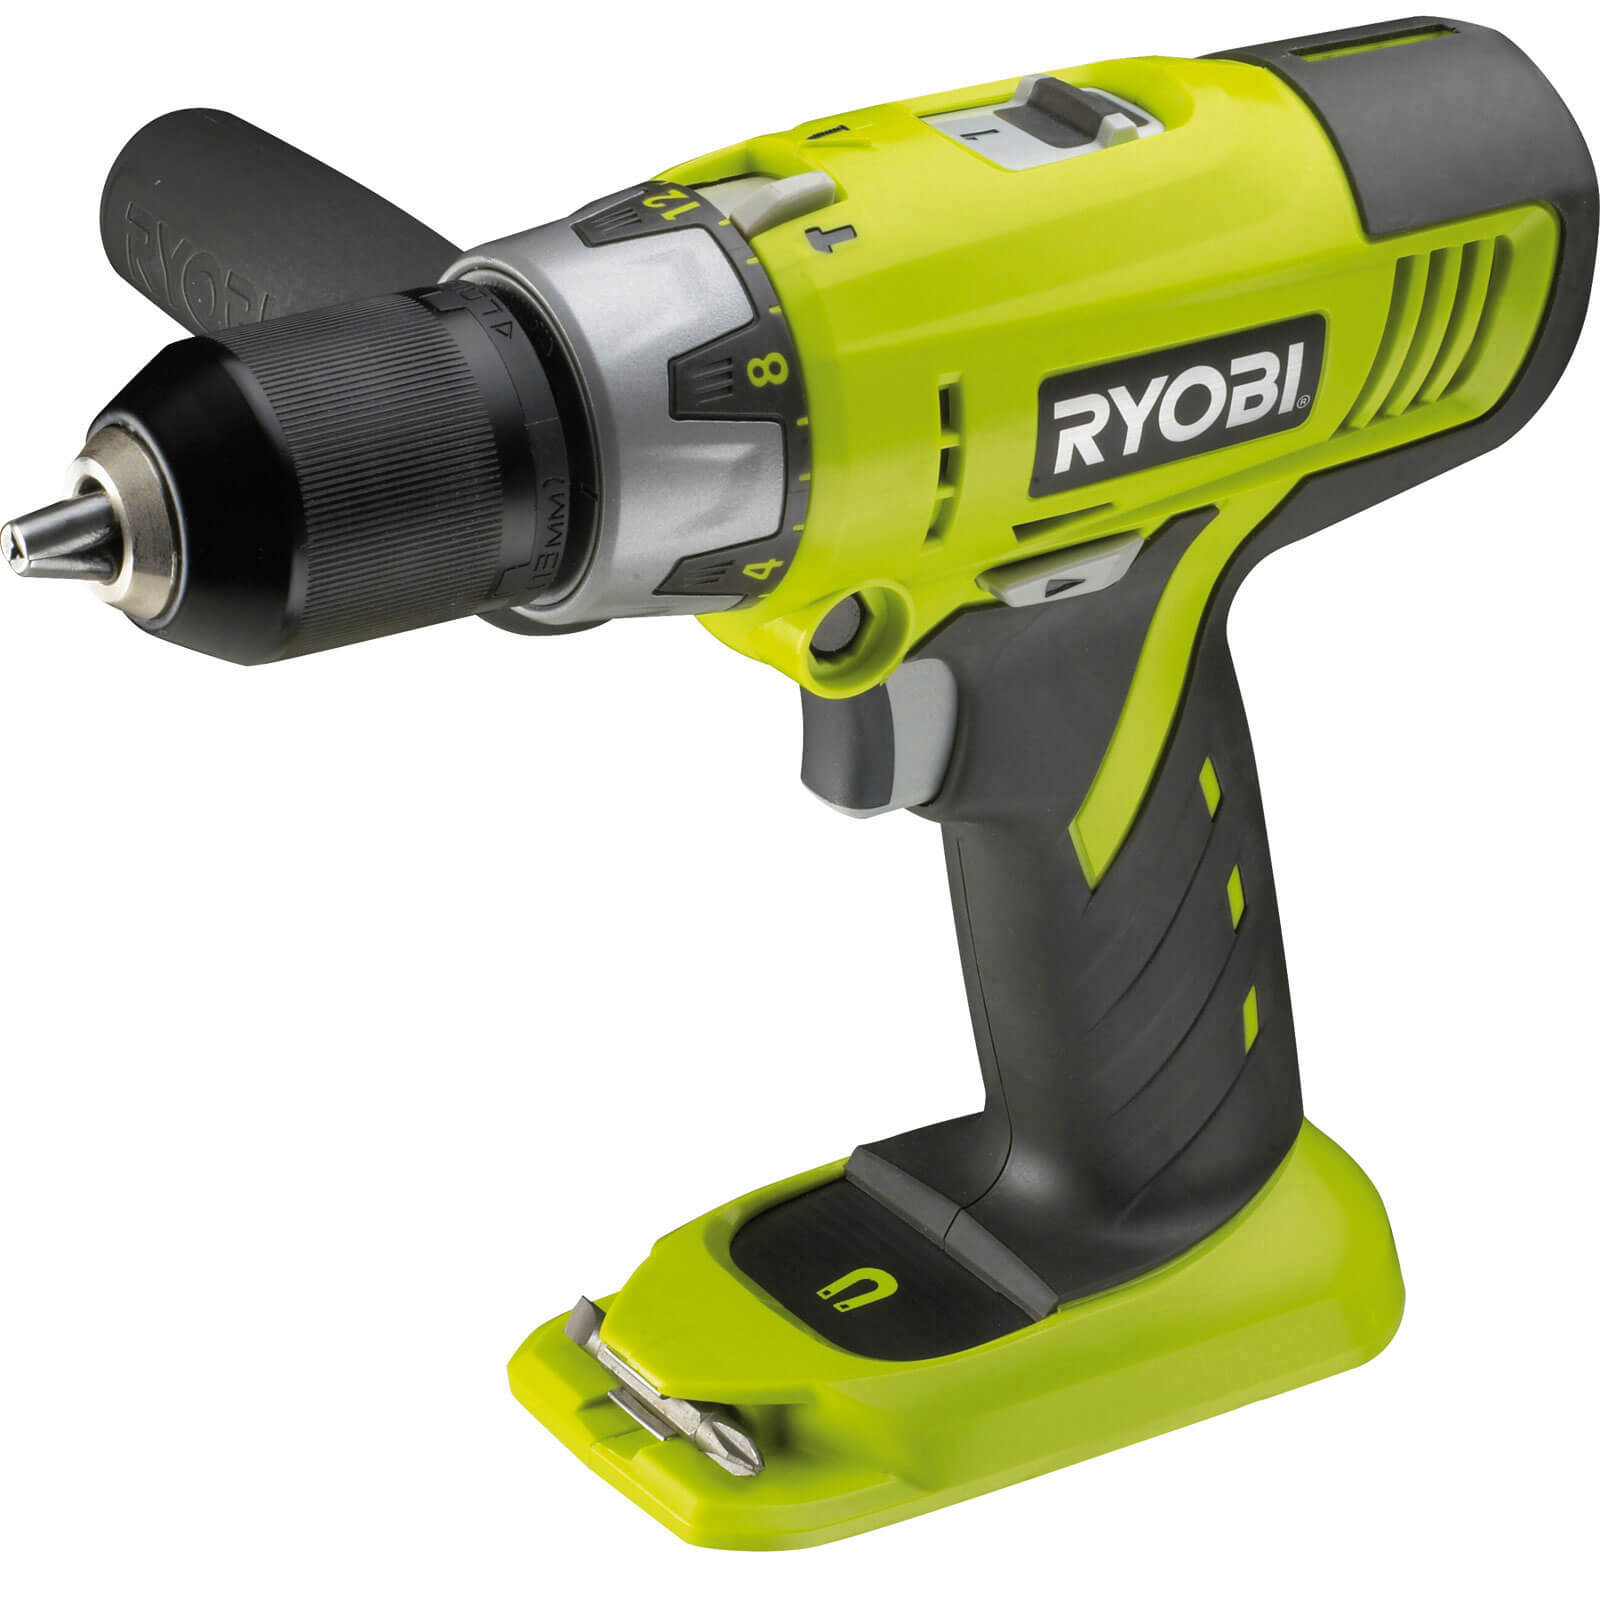 Ryobi LCDI1802M ONE+ 18v Cordless 2 Speed Combi Drill without Battery or Charger - Requires Separate ONE+ Battery & Charger